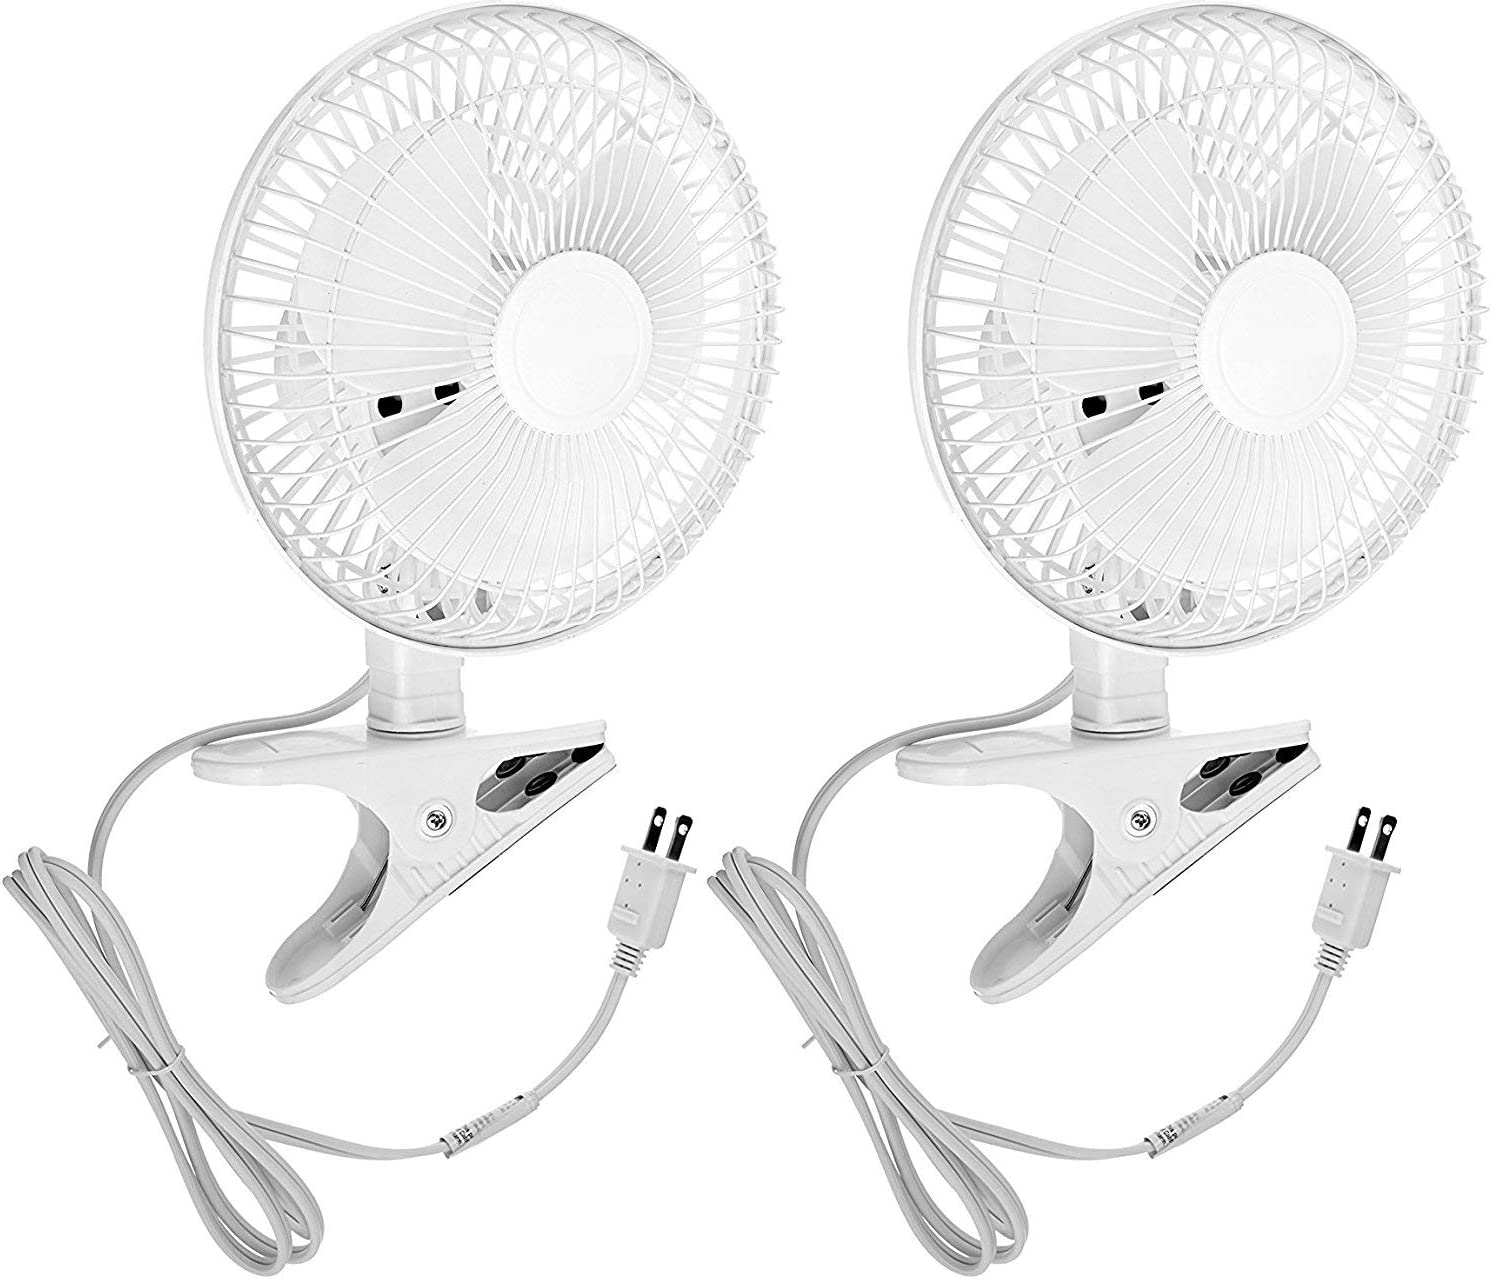 """6 INCH - 2 Speed - Adjustable Tilt, Whisper Quiet Operation Clip-On-Fan with Steel Safety Grill (2, 6"""" Fan with 5 FT Cord)"""